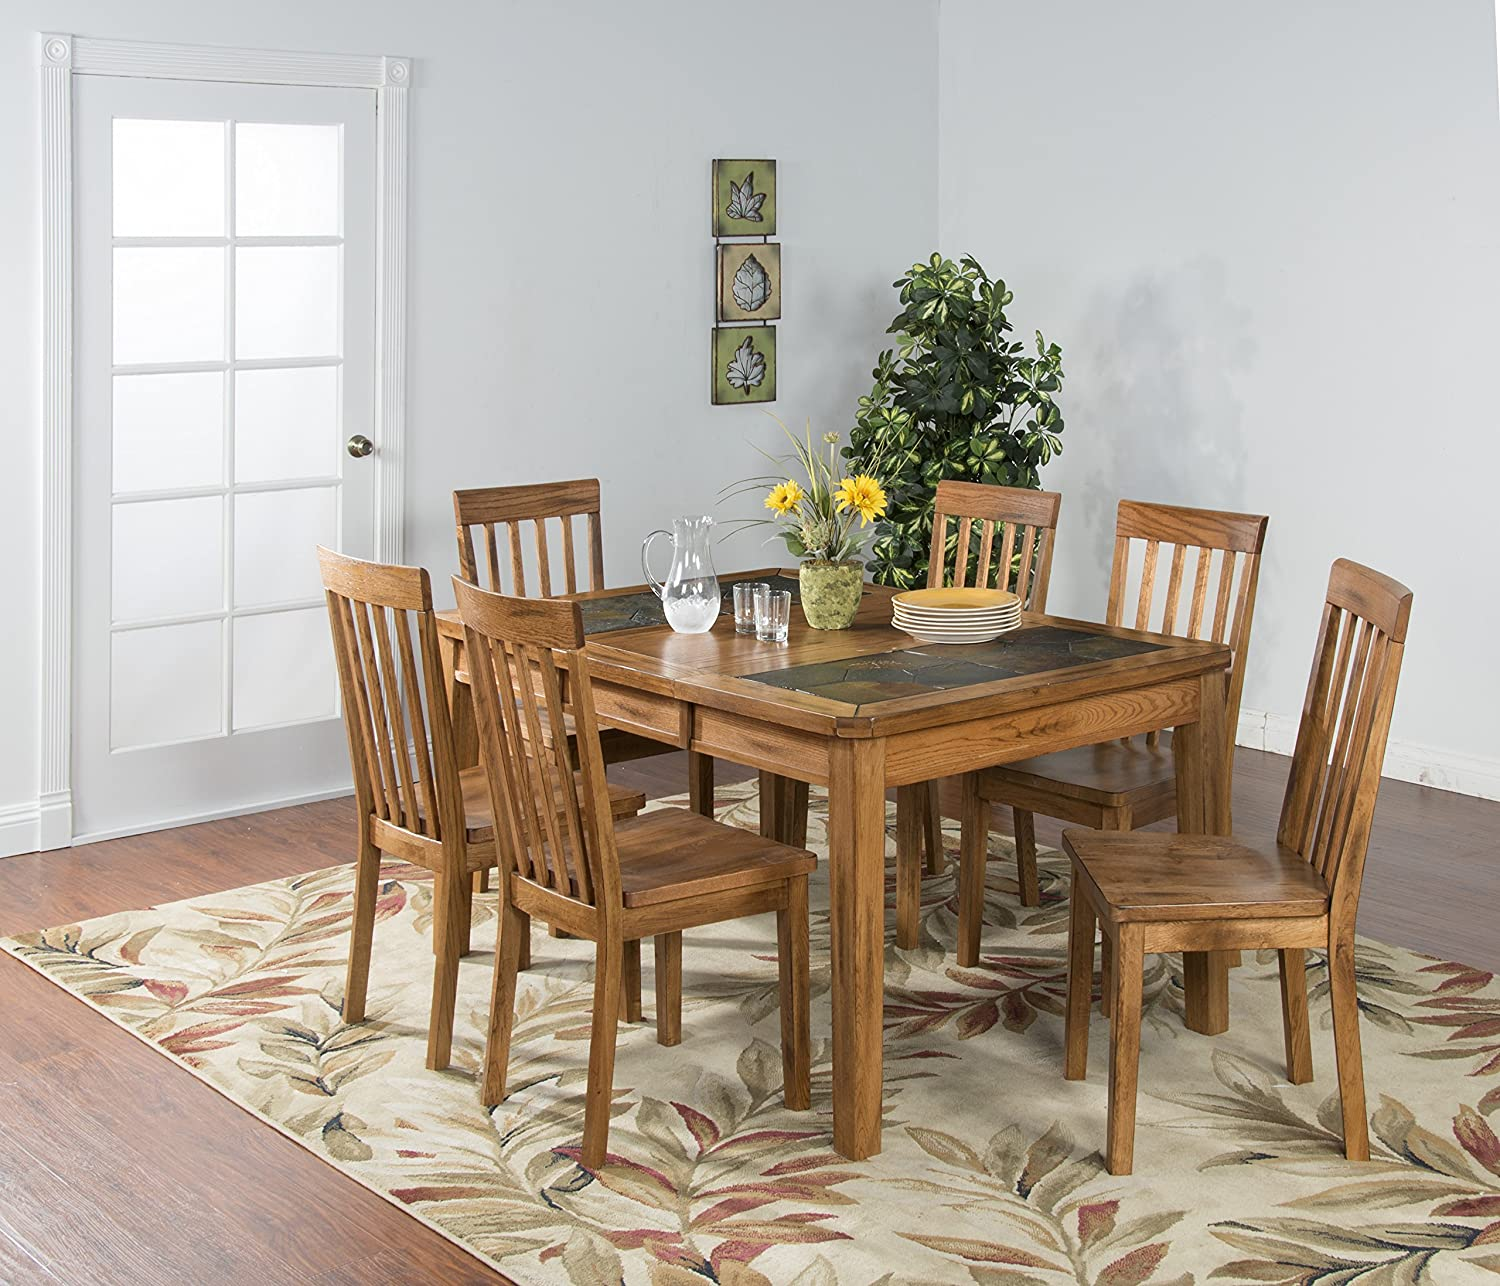 Sunny Designs Sedona 42 Extendable Slate Dining Table in Rustic Oak